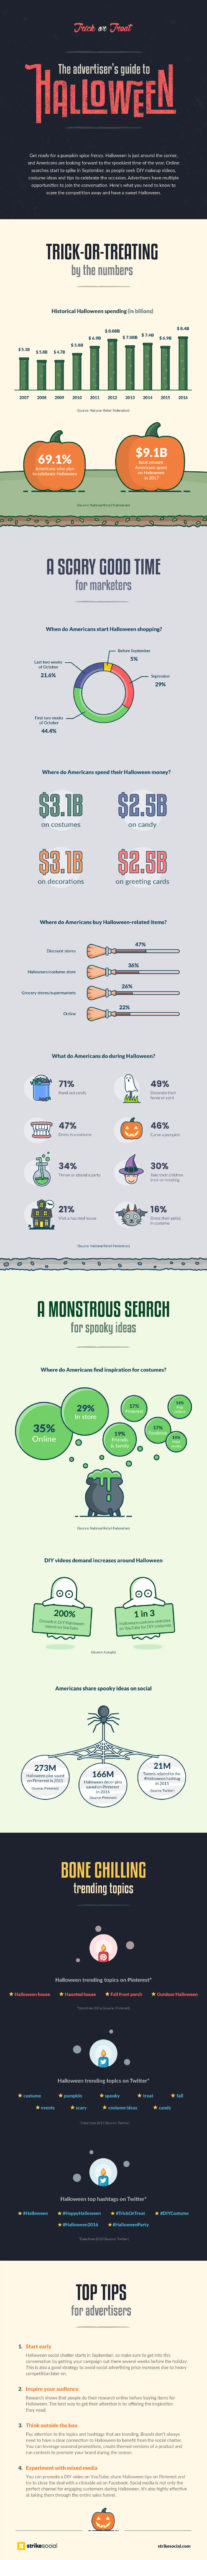 insights advertisers halloween infographic